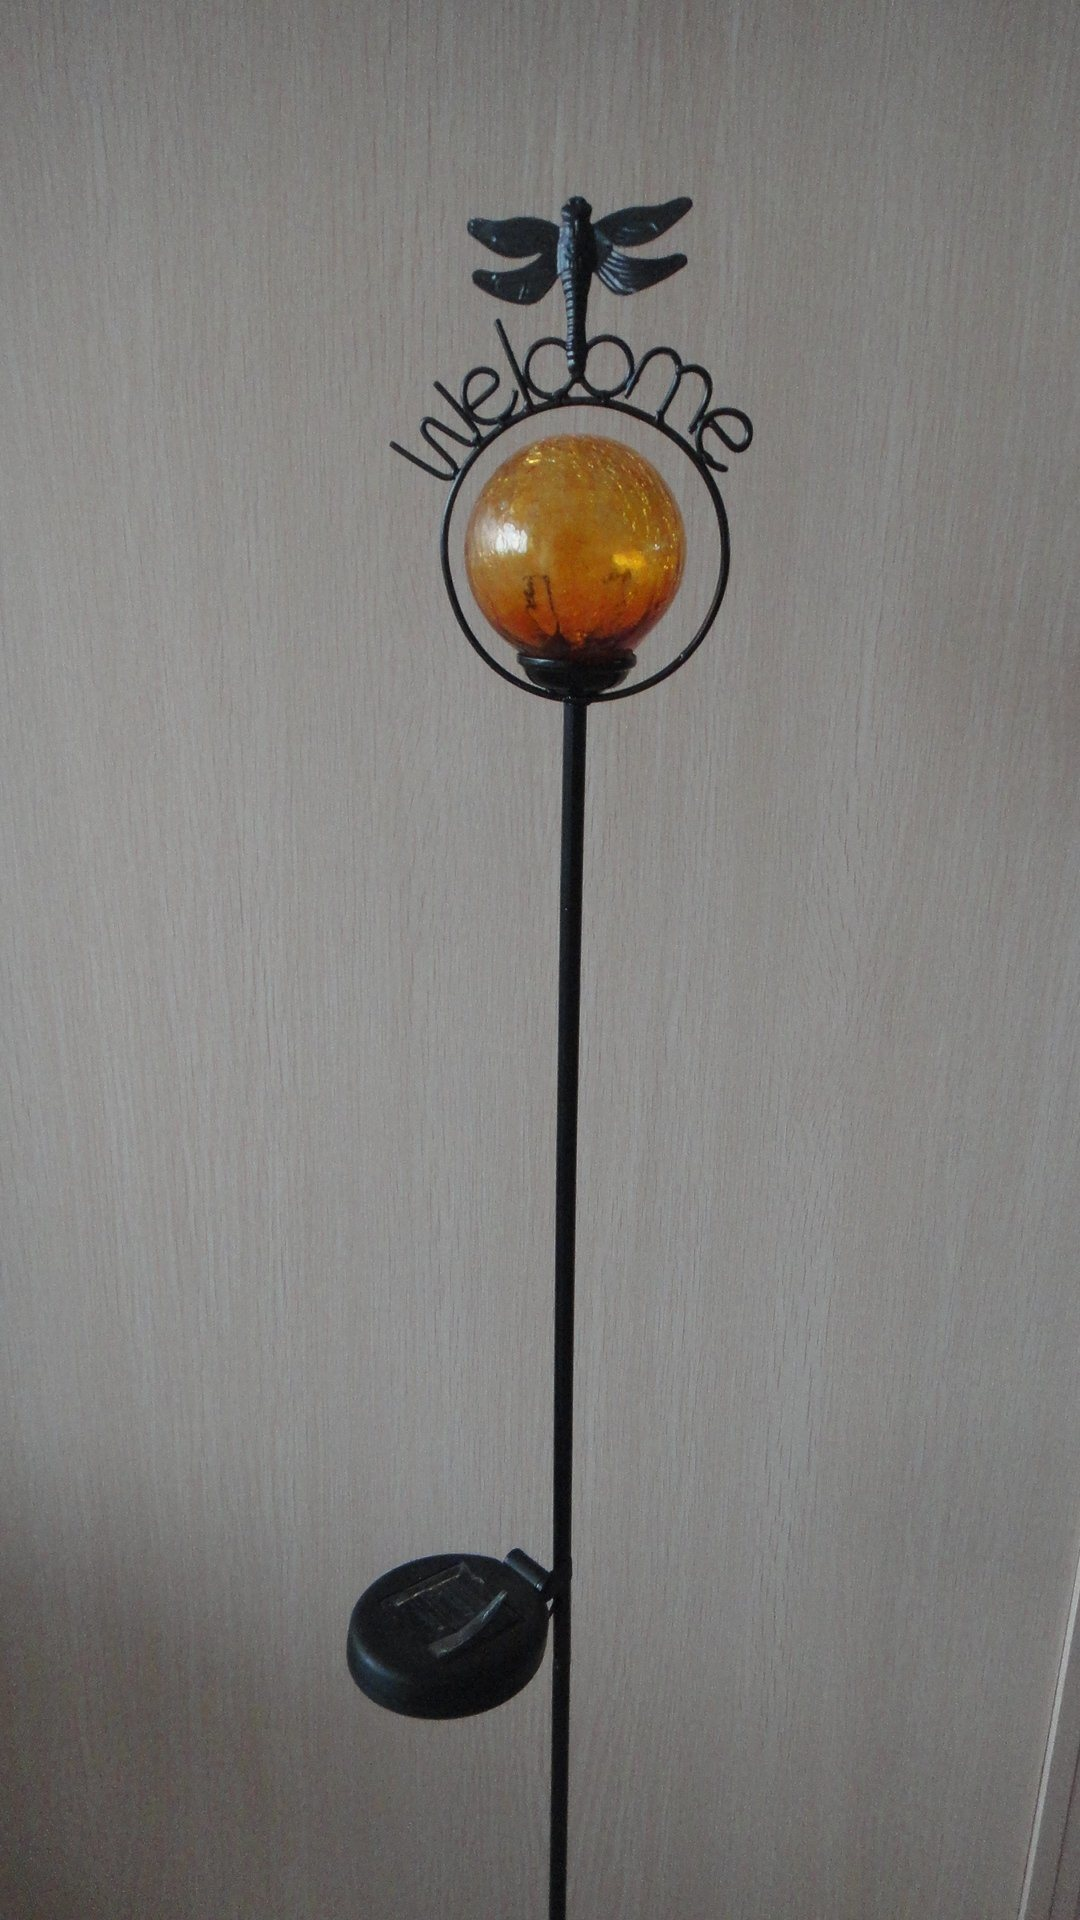 Iron Art and Crafts for Home Decoration, Metal Garden Light